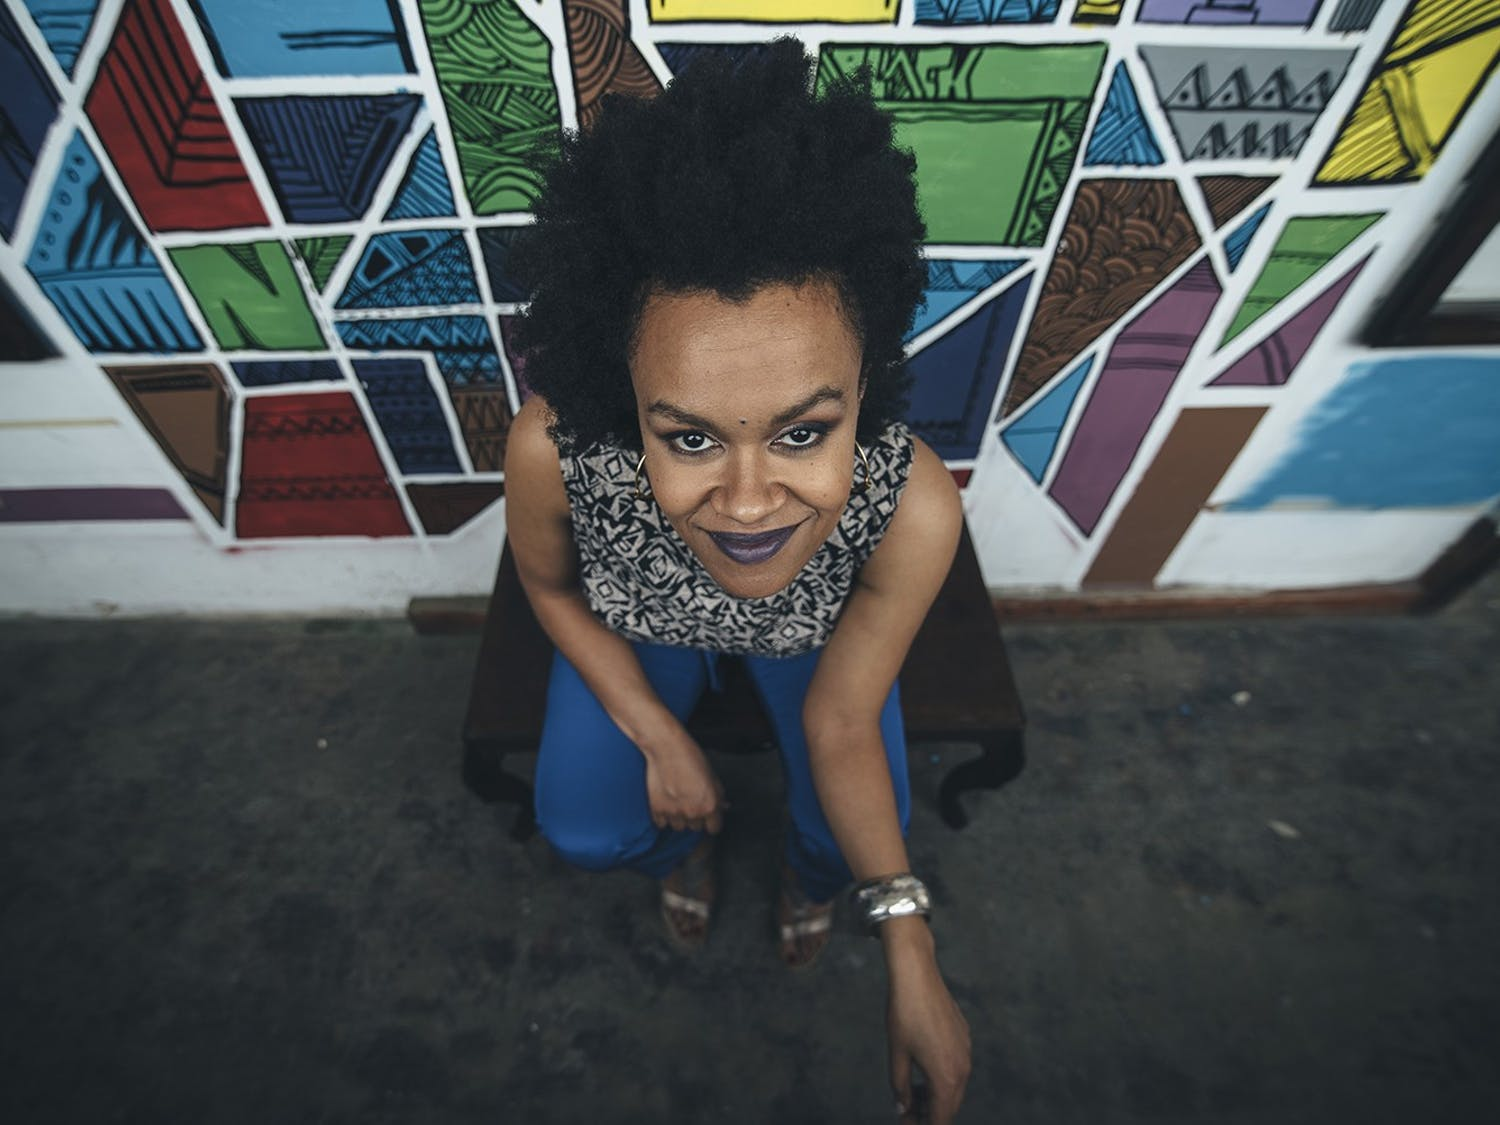 Ethiopian American songwriter and composer Meklit Hadero is coming to UNC to perform at Memorial Hall on Monday, March 16 at 7:30 p.m. Photo courtesy of John Nilsen.